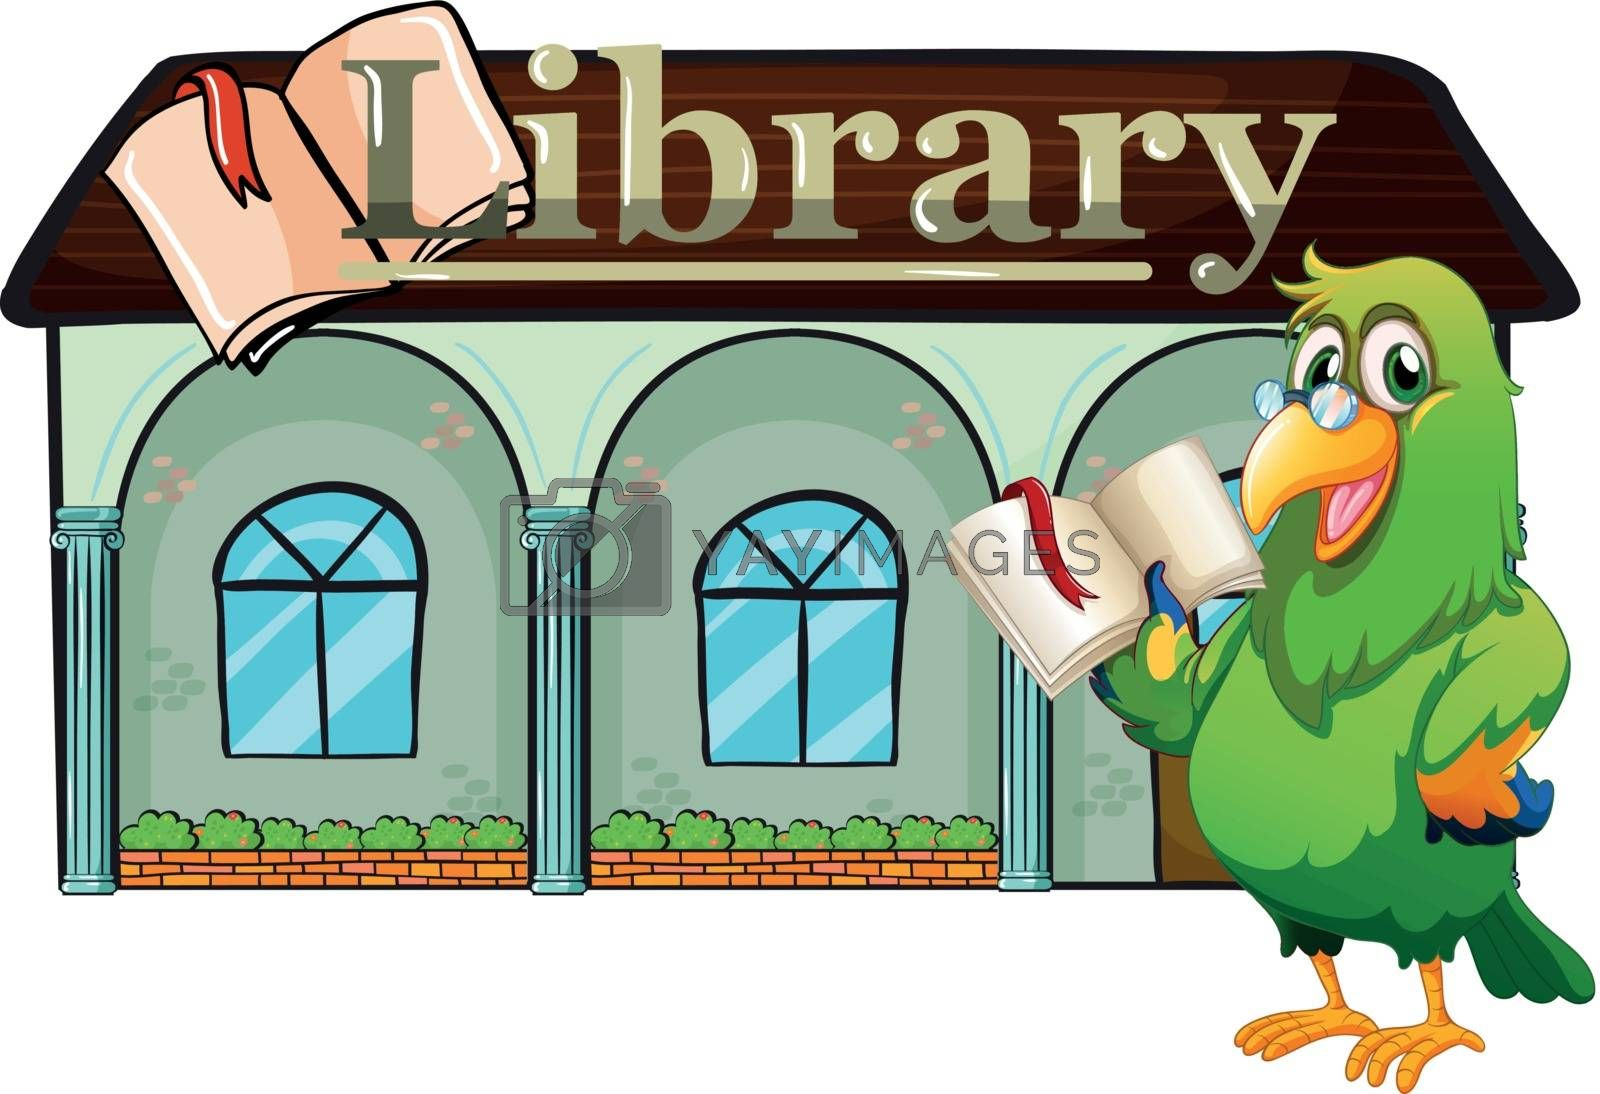 Illustration of an owl holding a book outside the library  on a white background